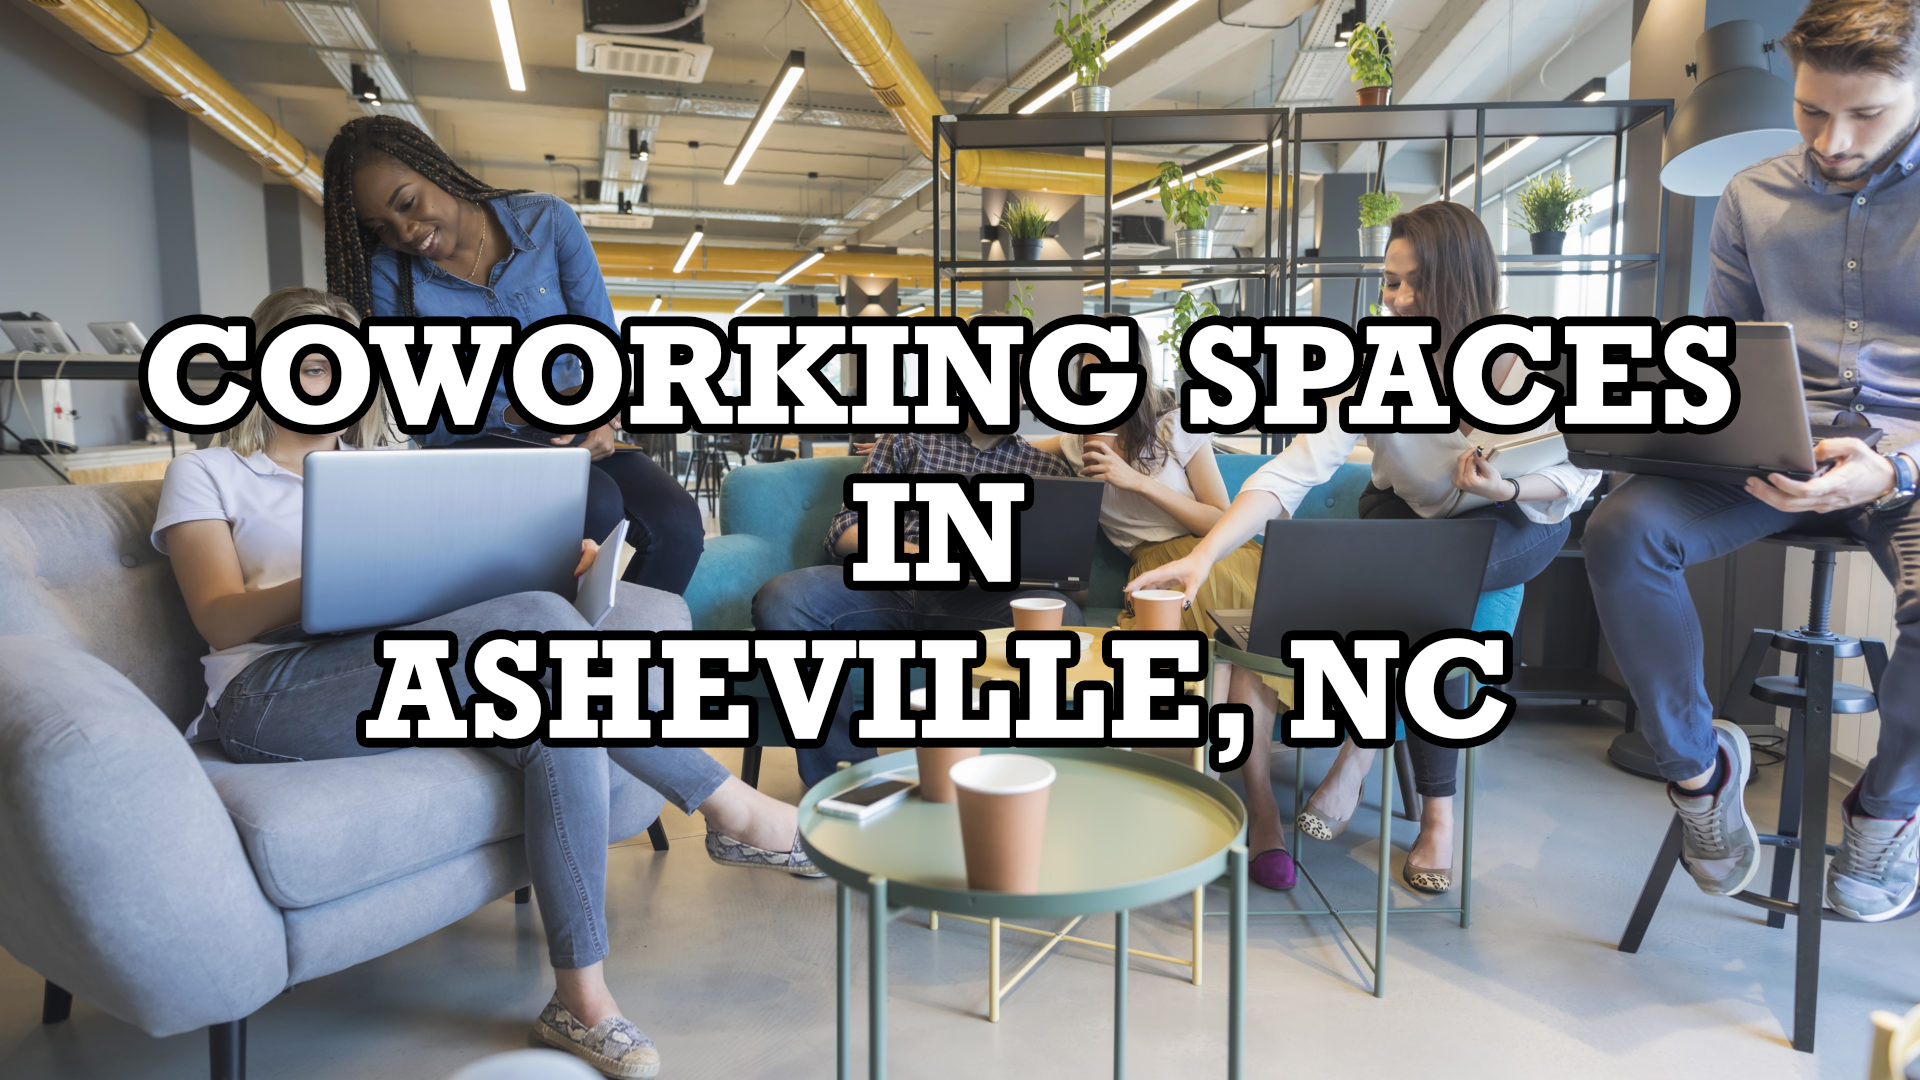 Asheville Coworking: Has its time come for the Western N.C. market?